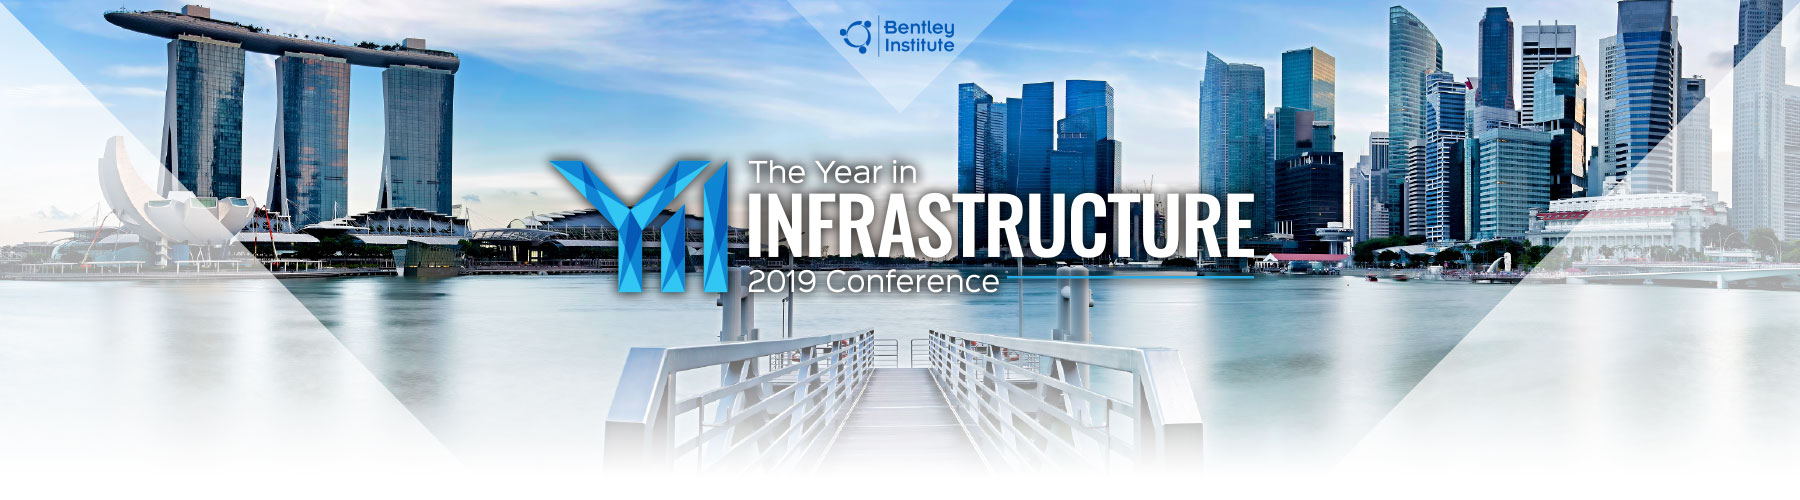 theYear in InfrastructureConference 2019